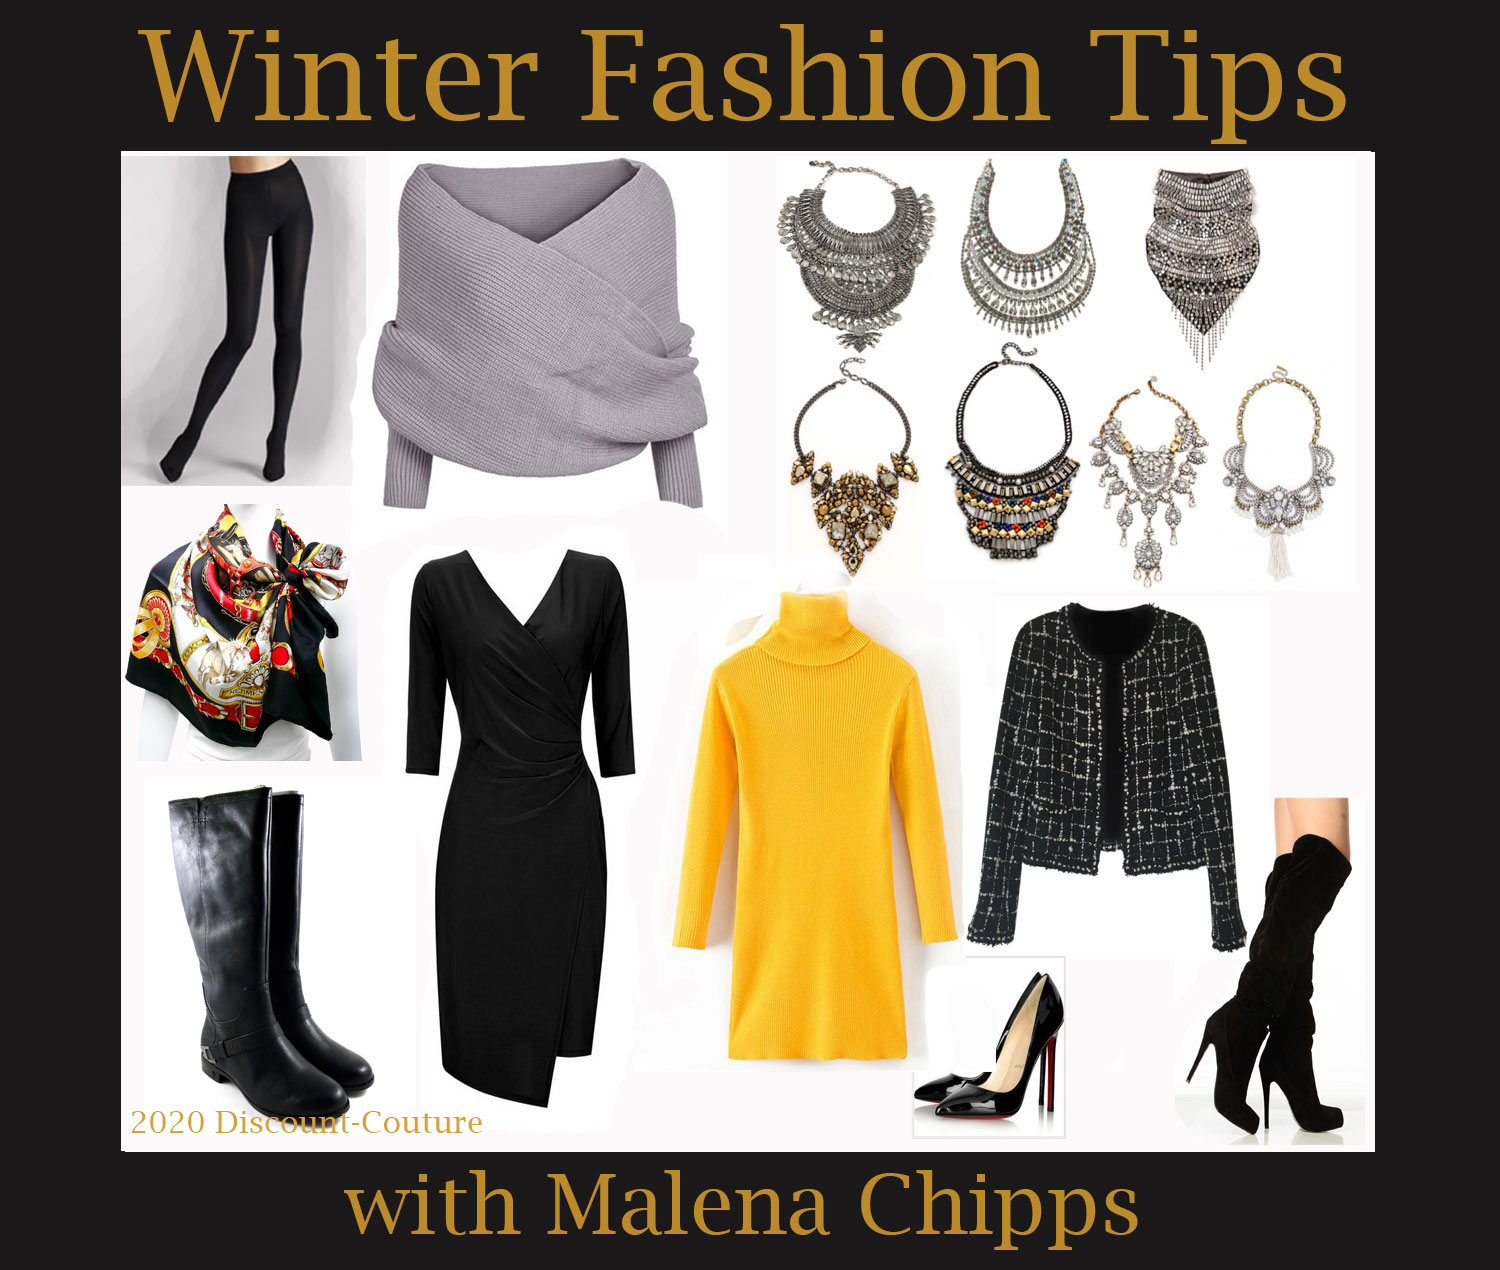 Winter Fashion Tips